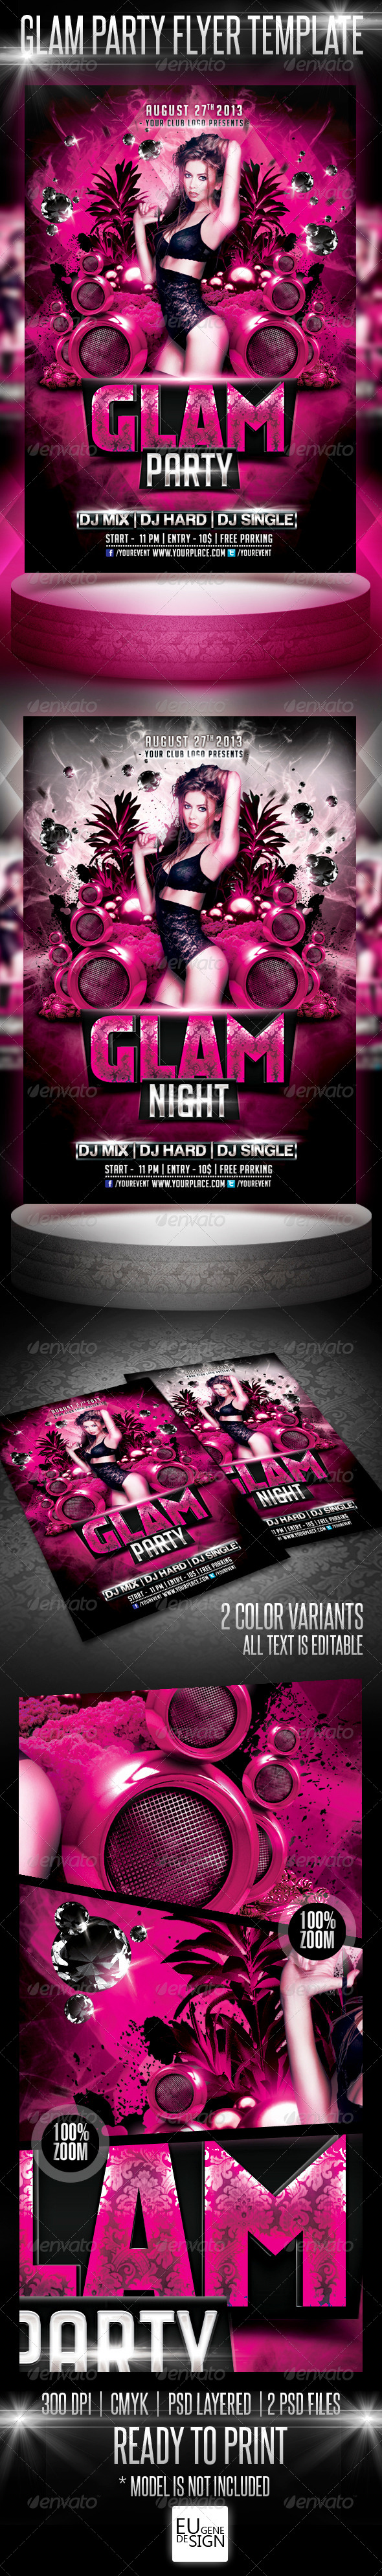 Glam Party Flyer Template - Clubs & Parties Events